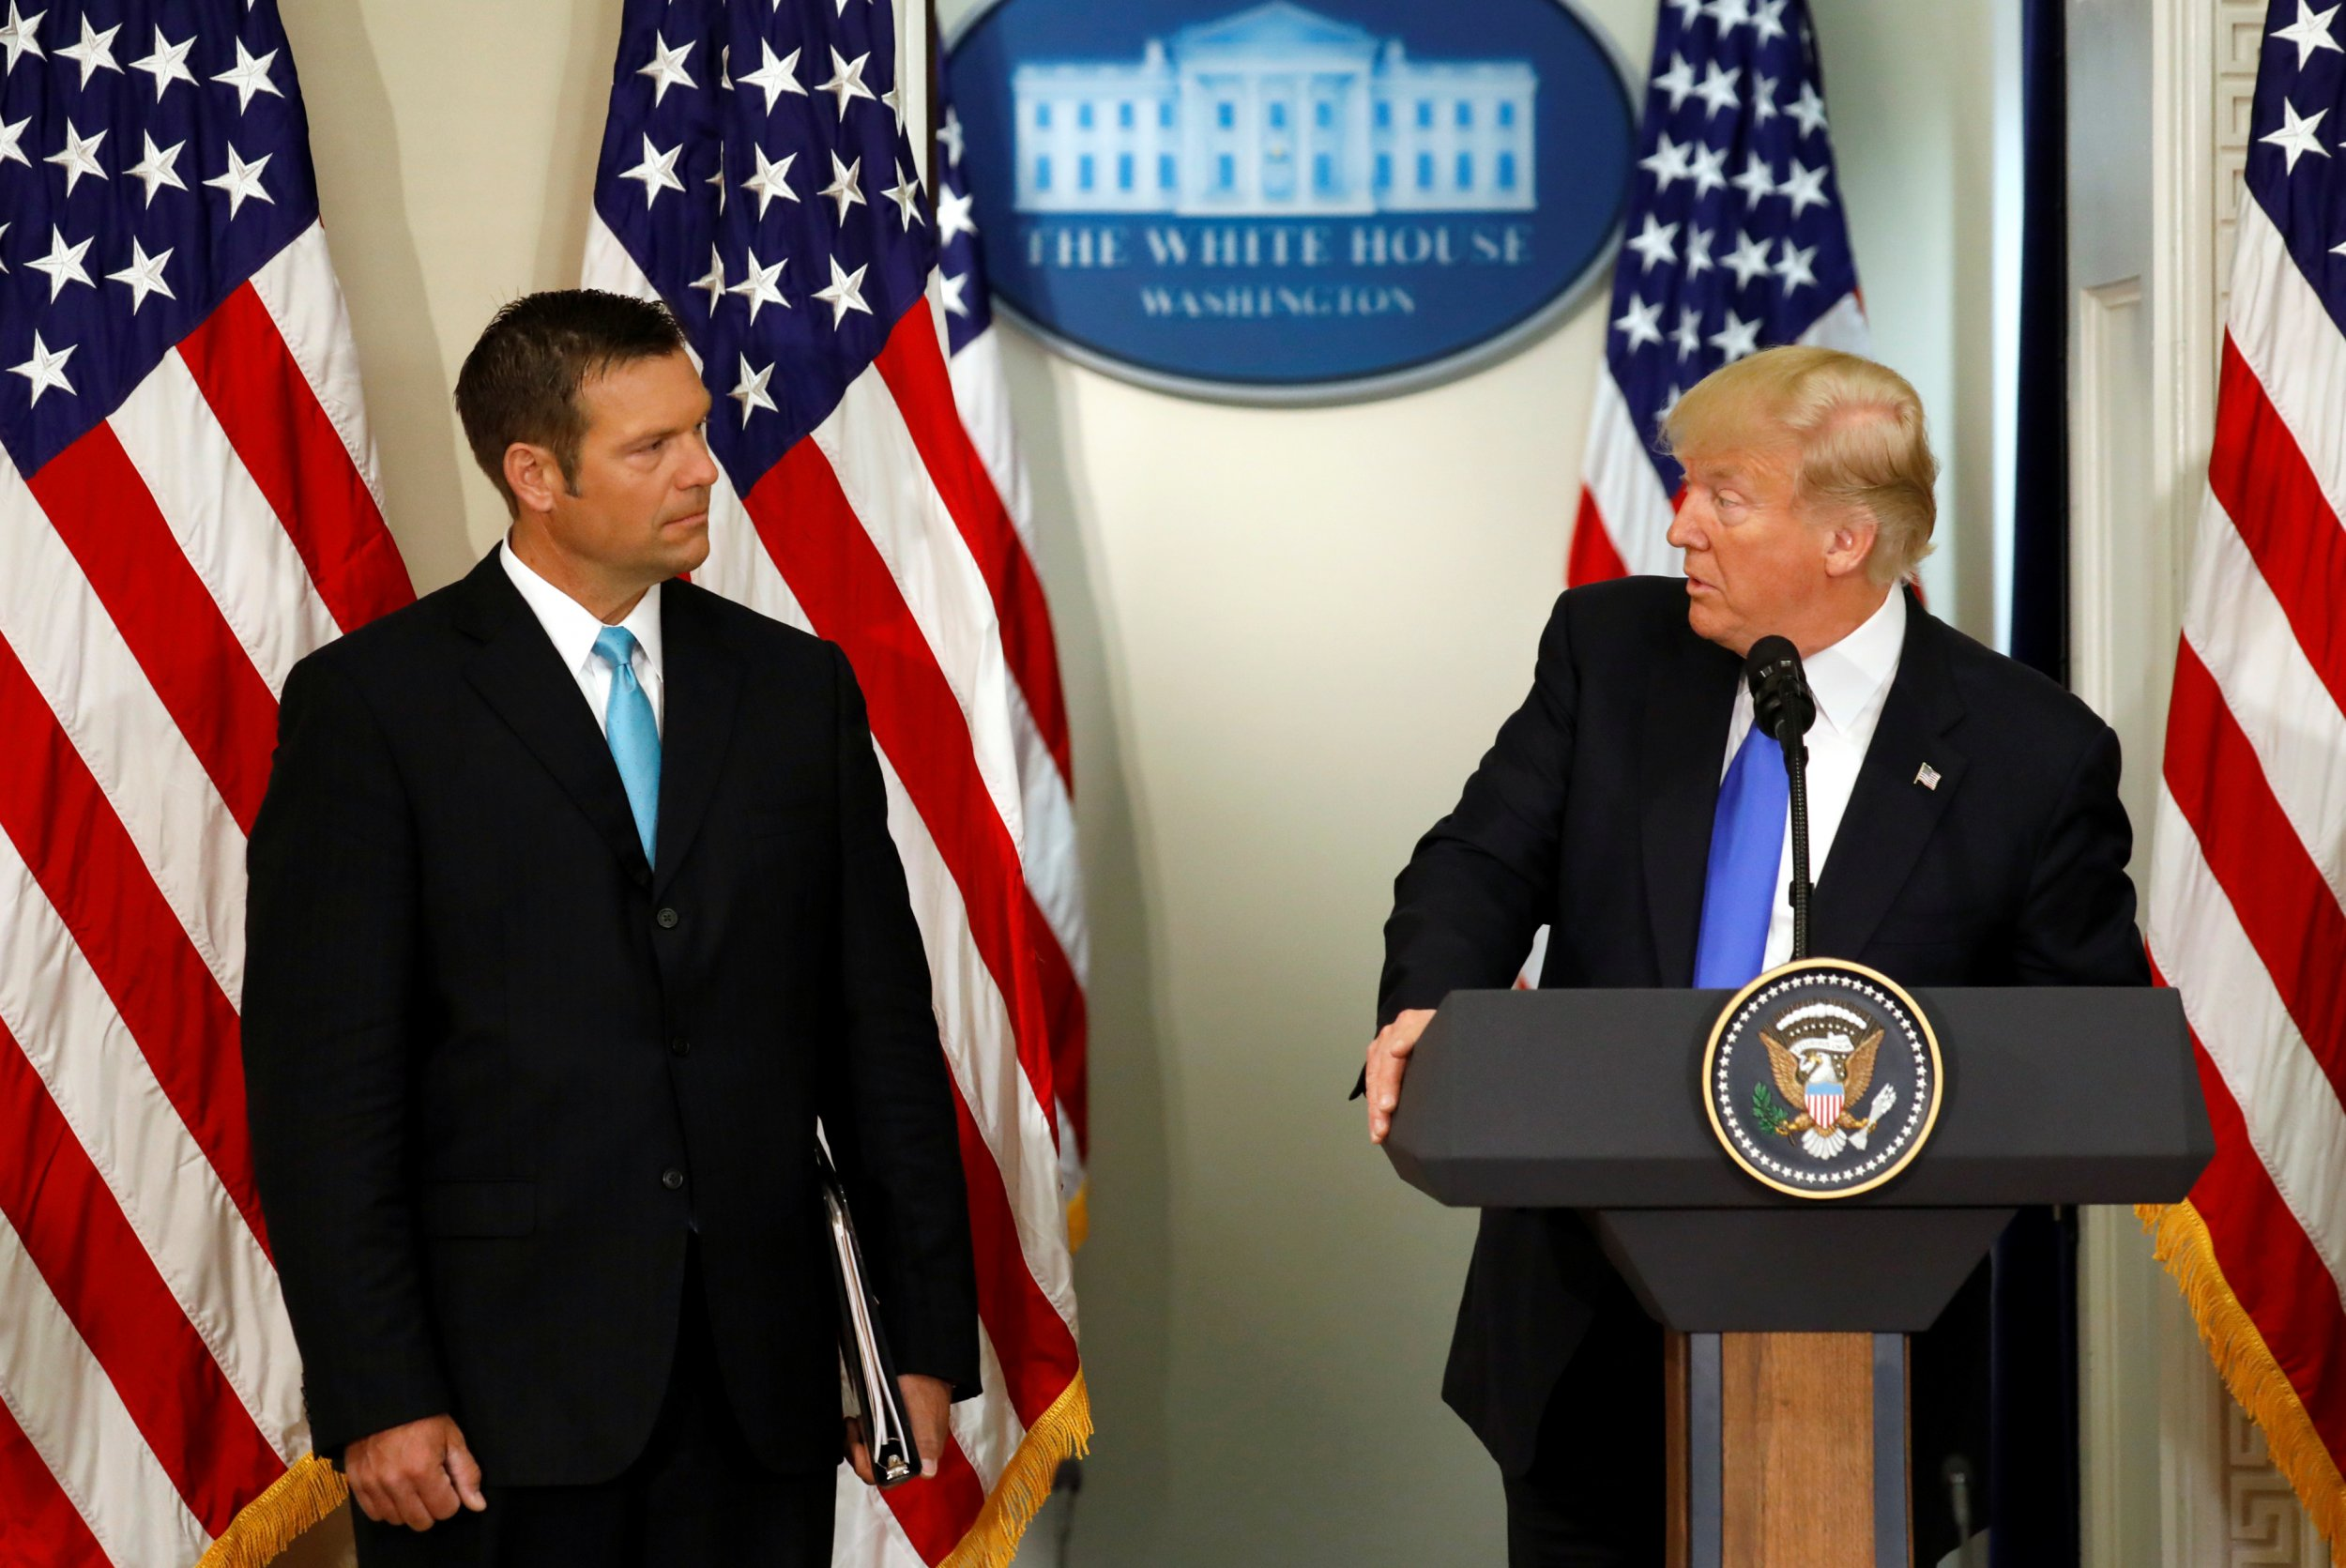 kobach and trump pacei